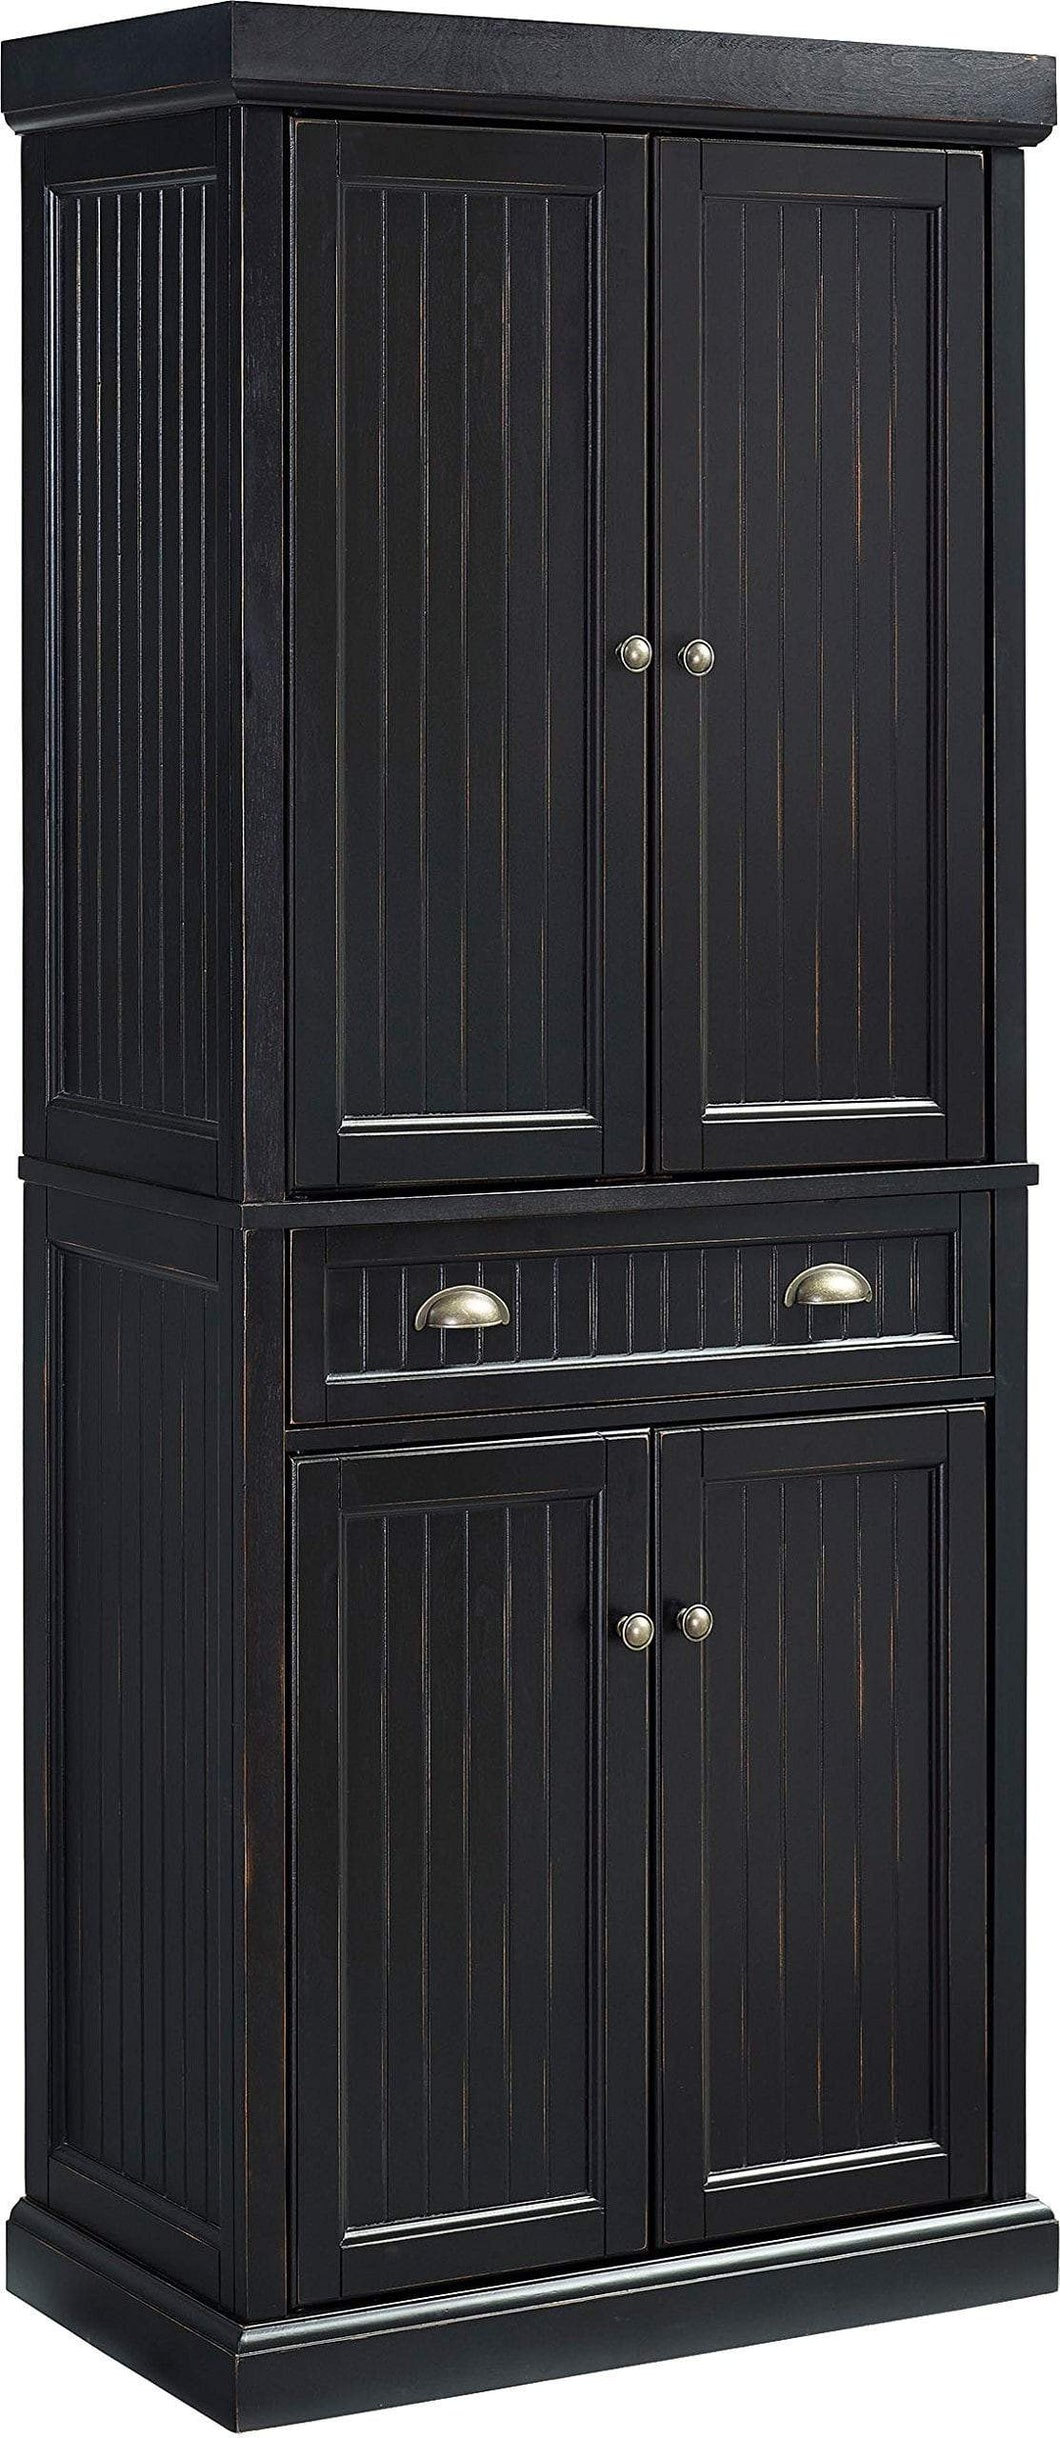 Selection crosley furniture seaside kitchen pantry cabinet distressed black